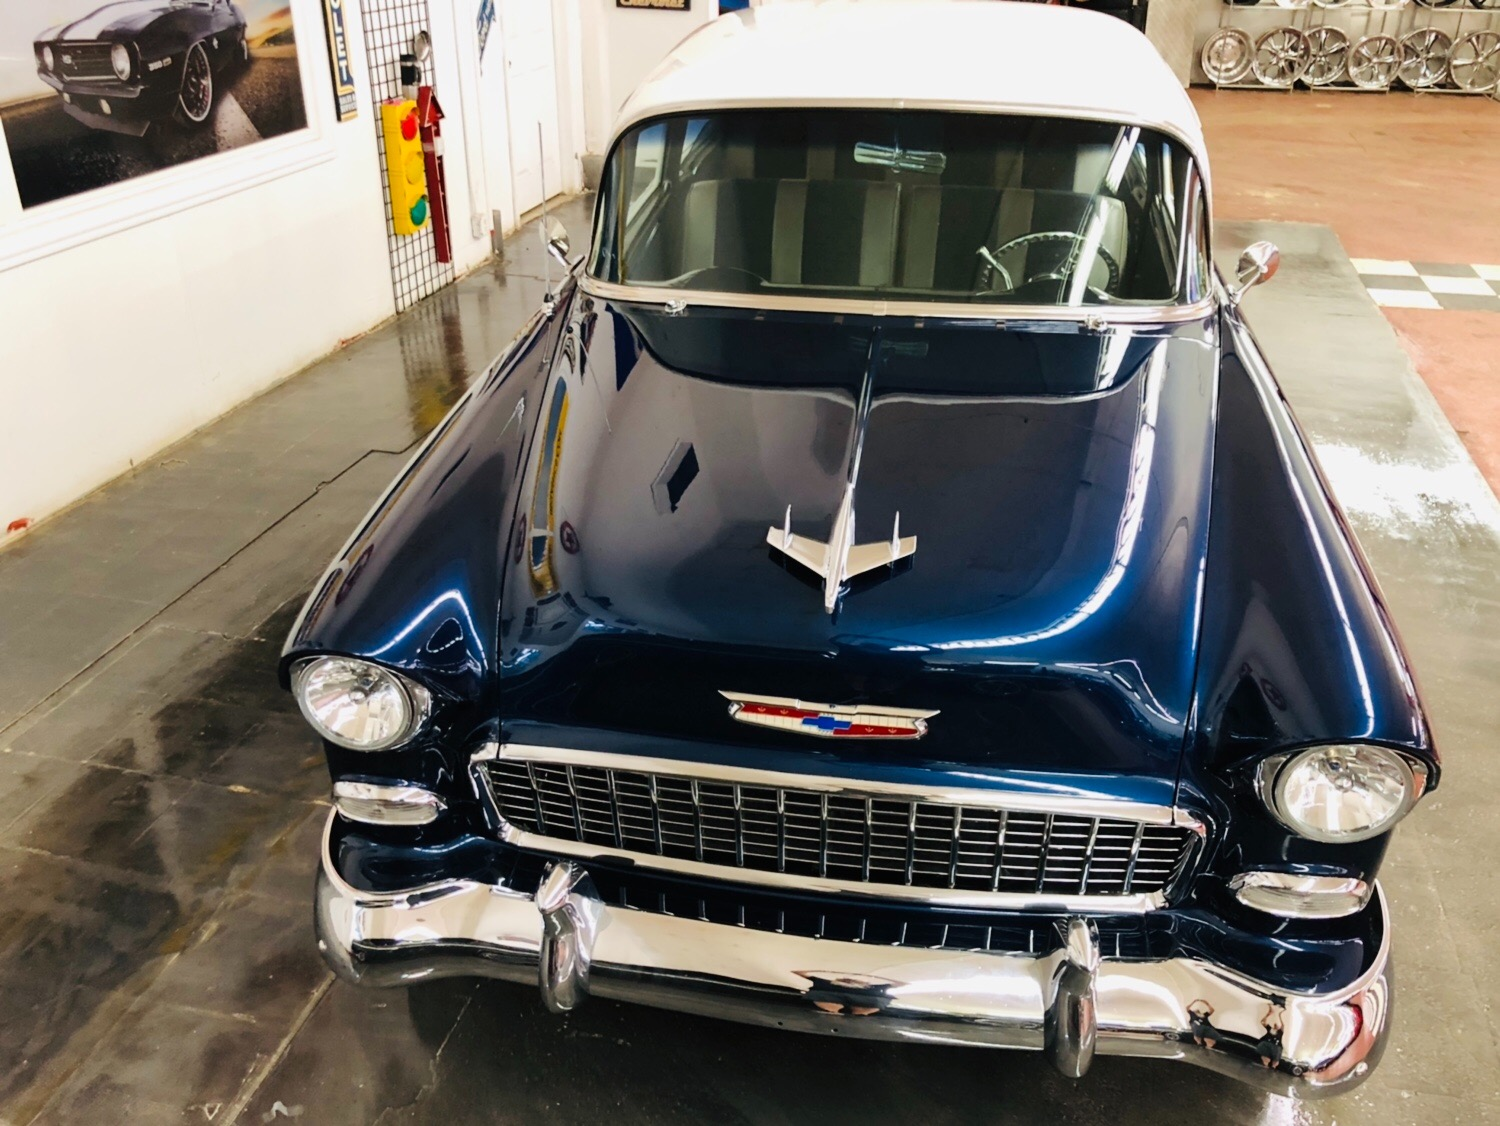 Used 1955 Chevrolet Bel Air -AMERICAN CLASSIC PRO TOURING RESTORED AC CUSTOM HOTROD VINTAGE-SEE VIDEO | Mundelein, IL